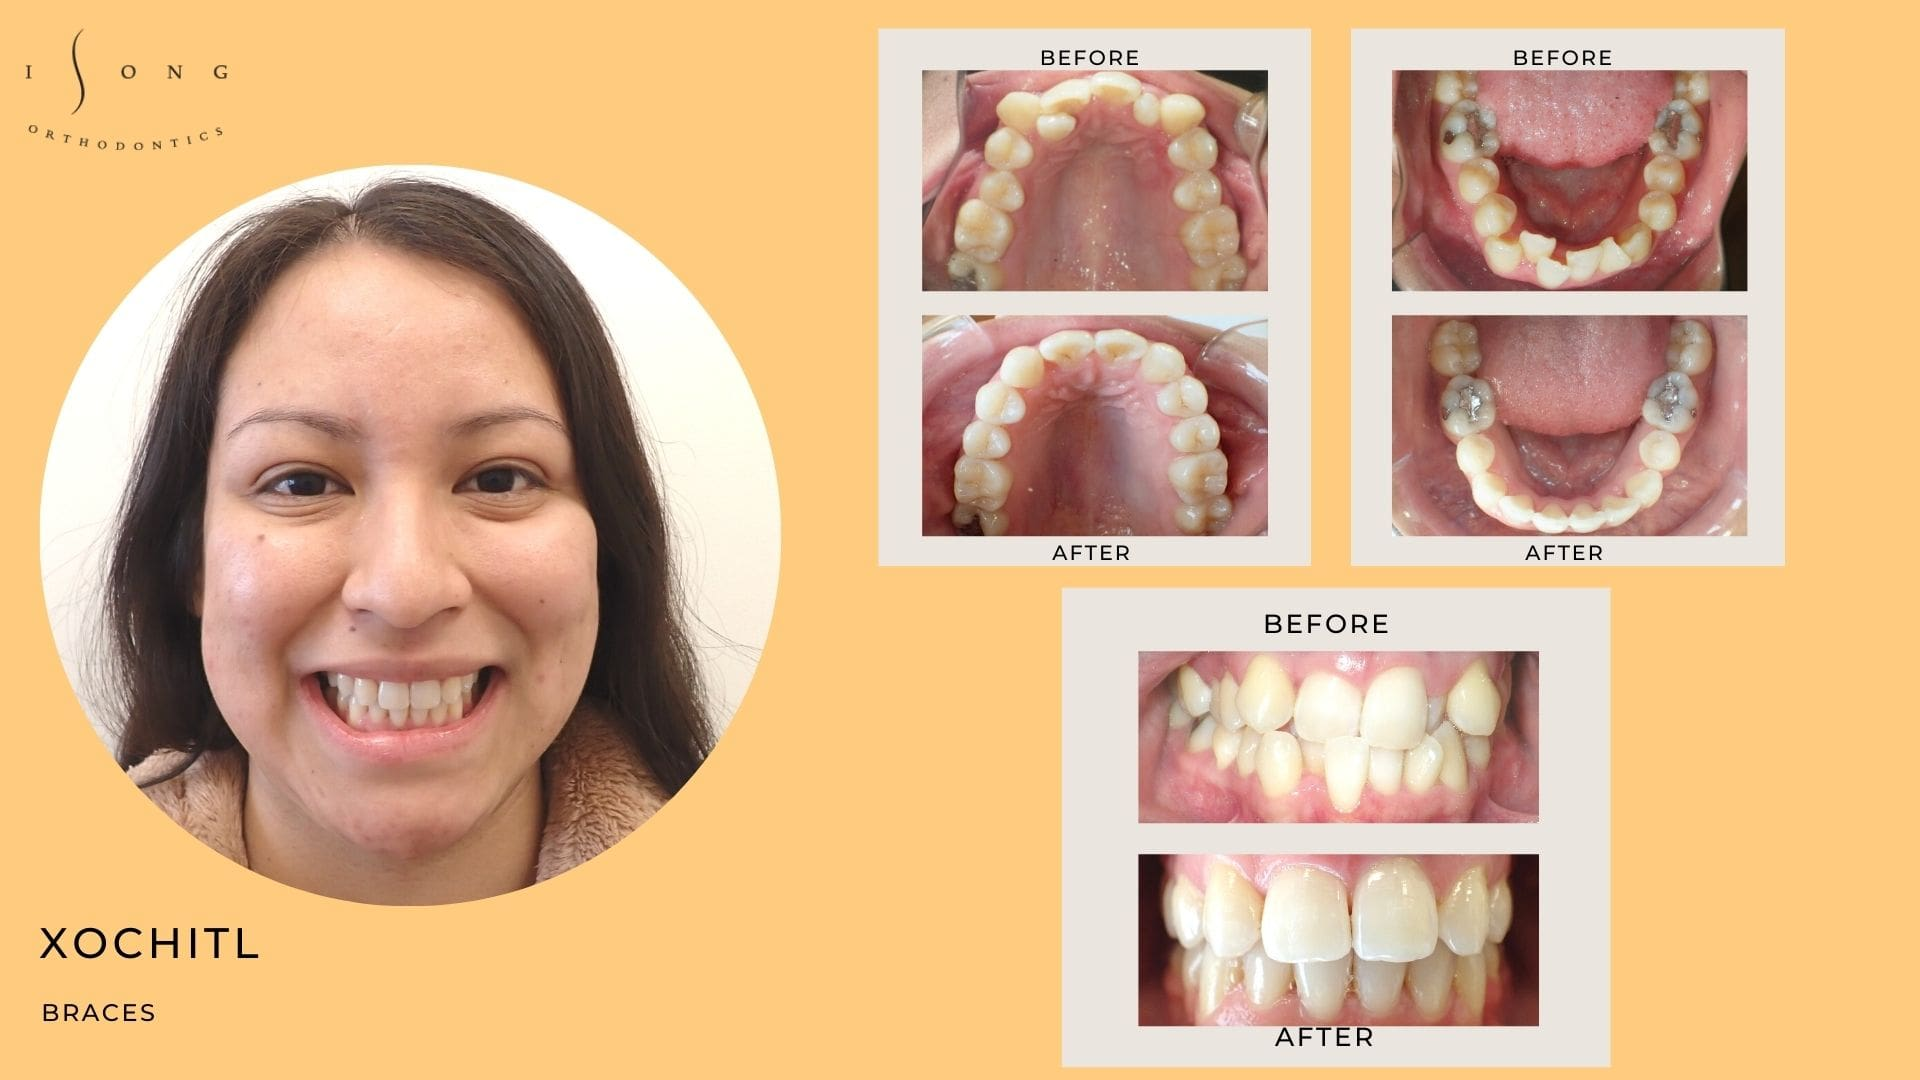 Xochitl Braces Before and After